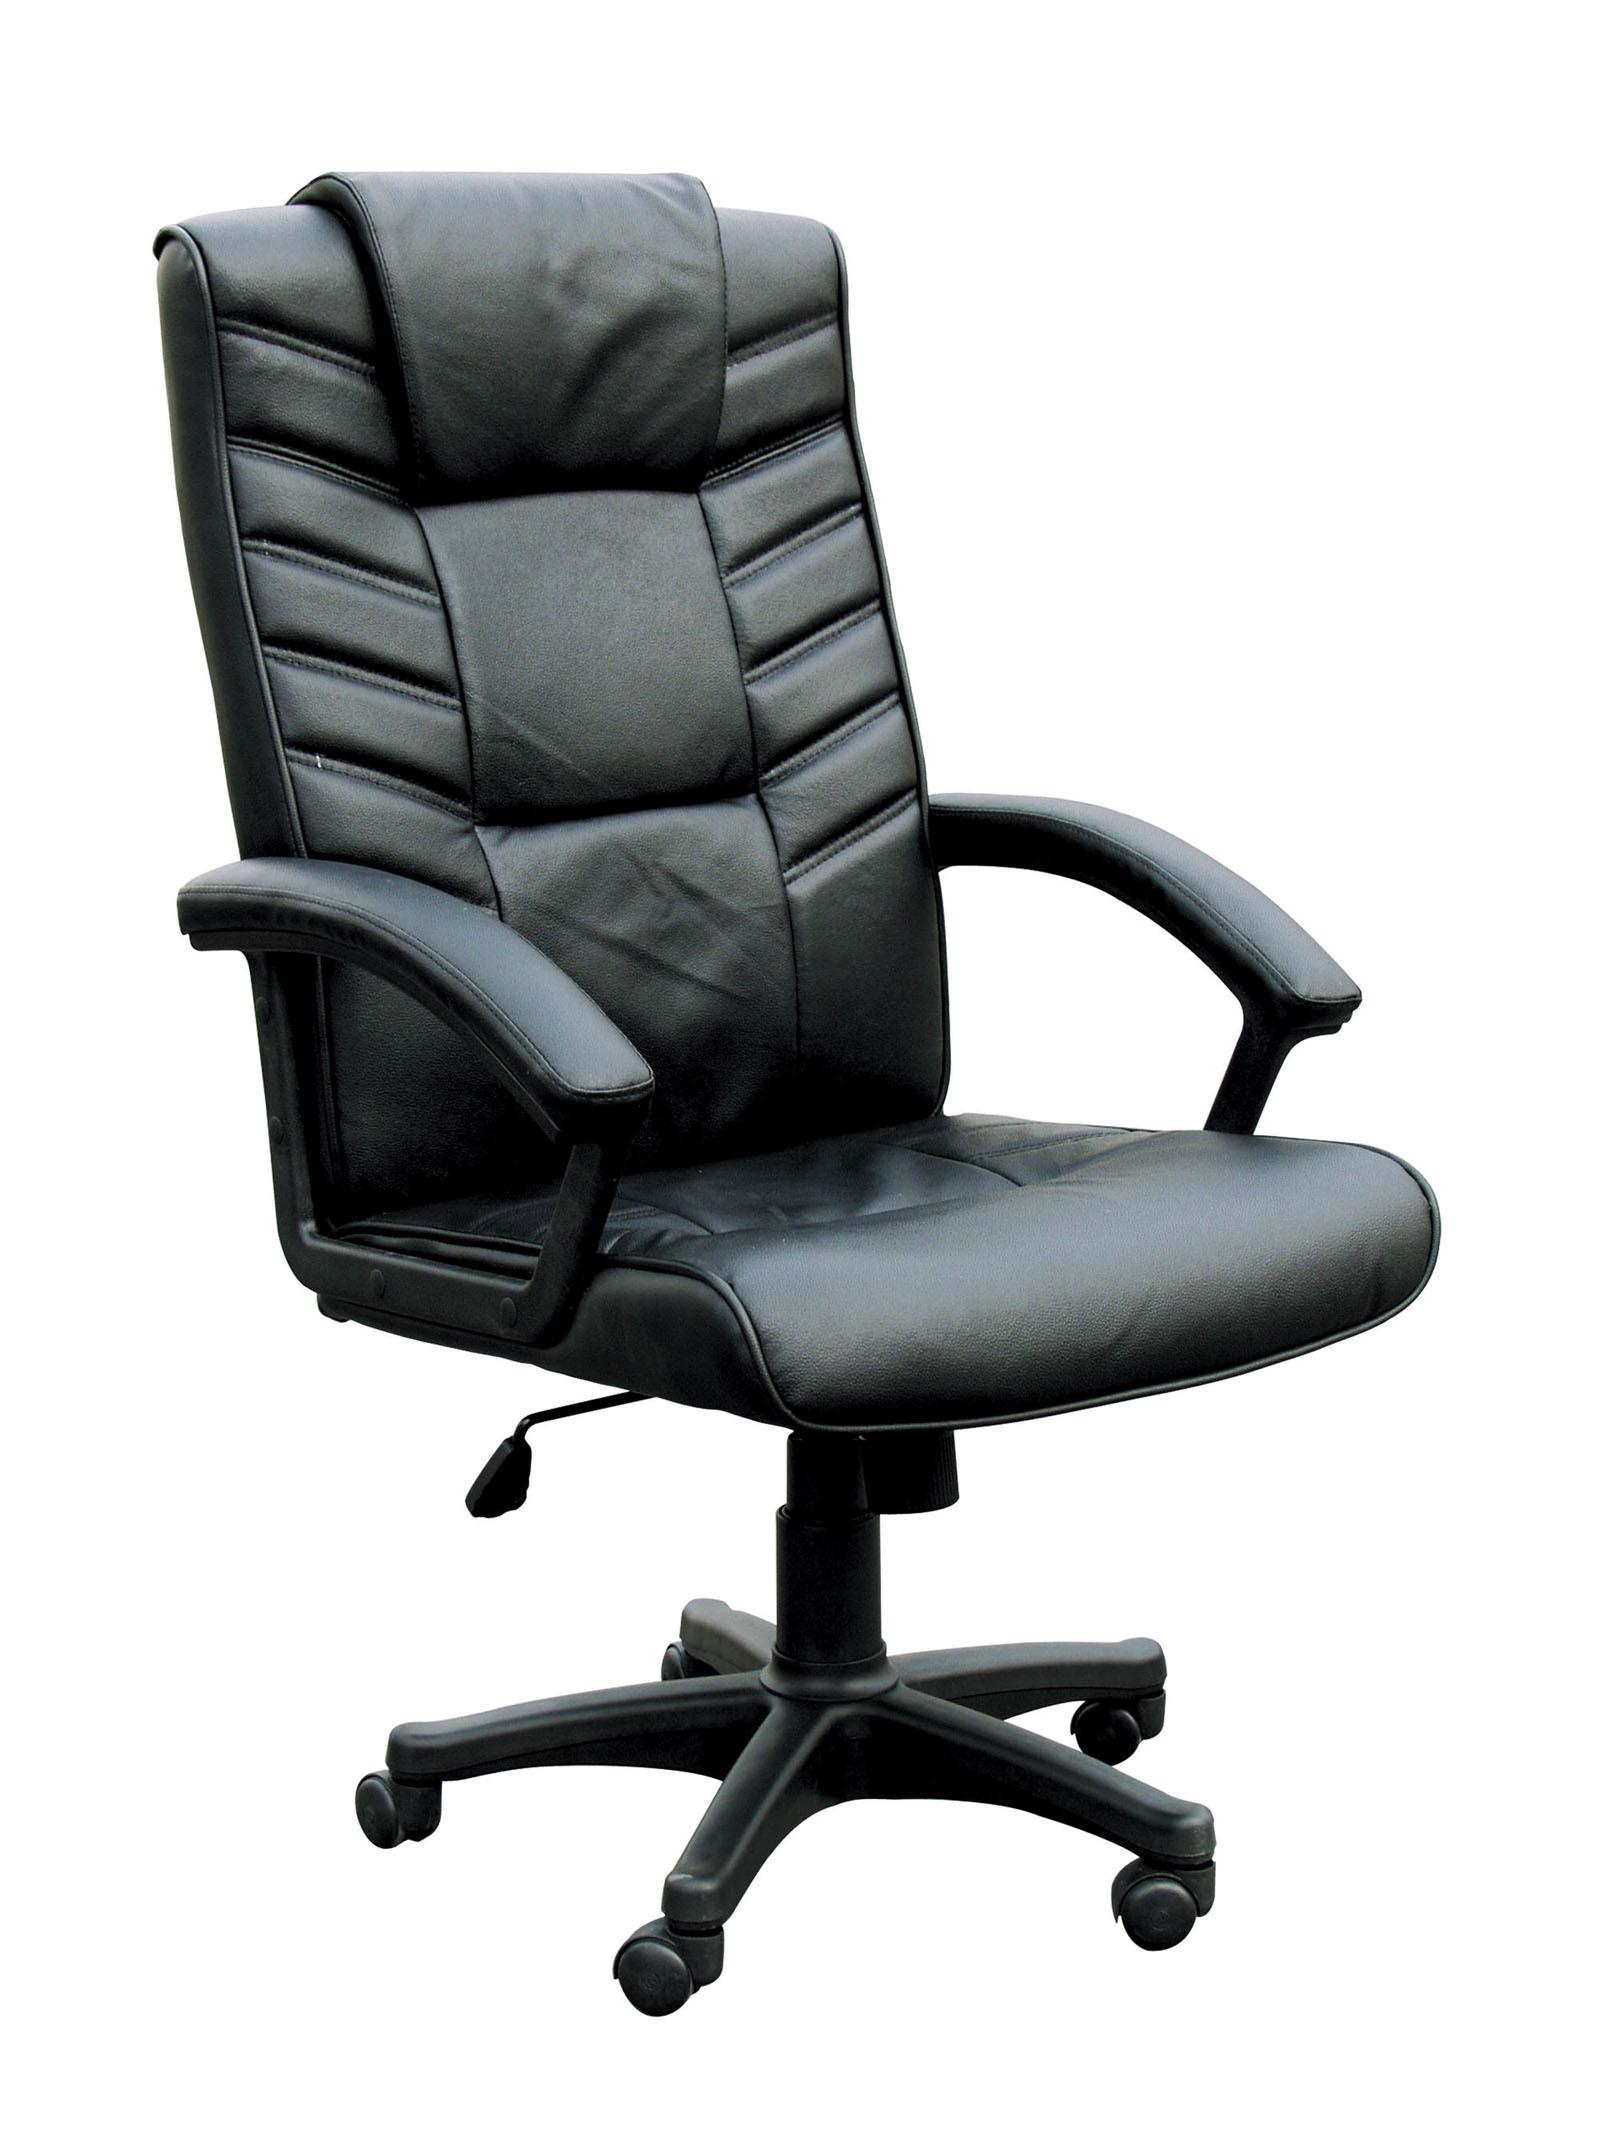 Acme Furniture Chesterfield Executive Chair W/Pneumatic Lift - Item Number: 02341